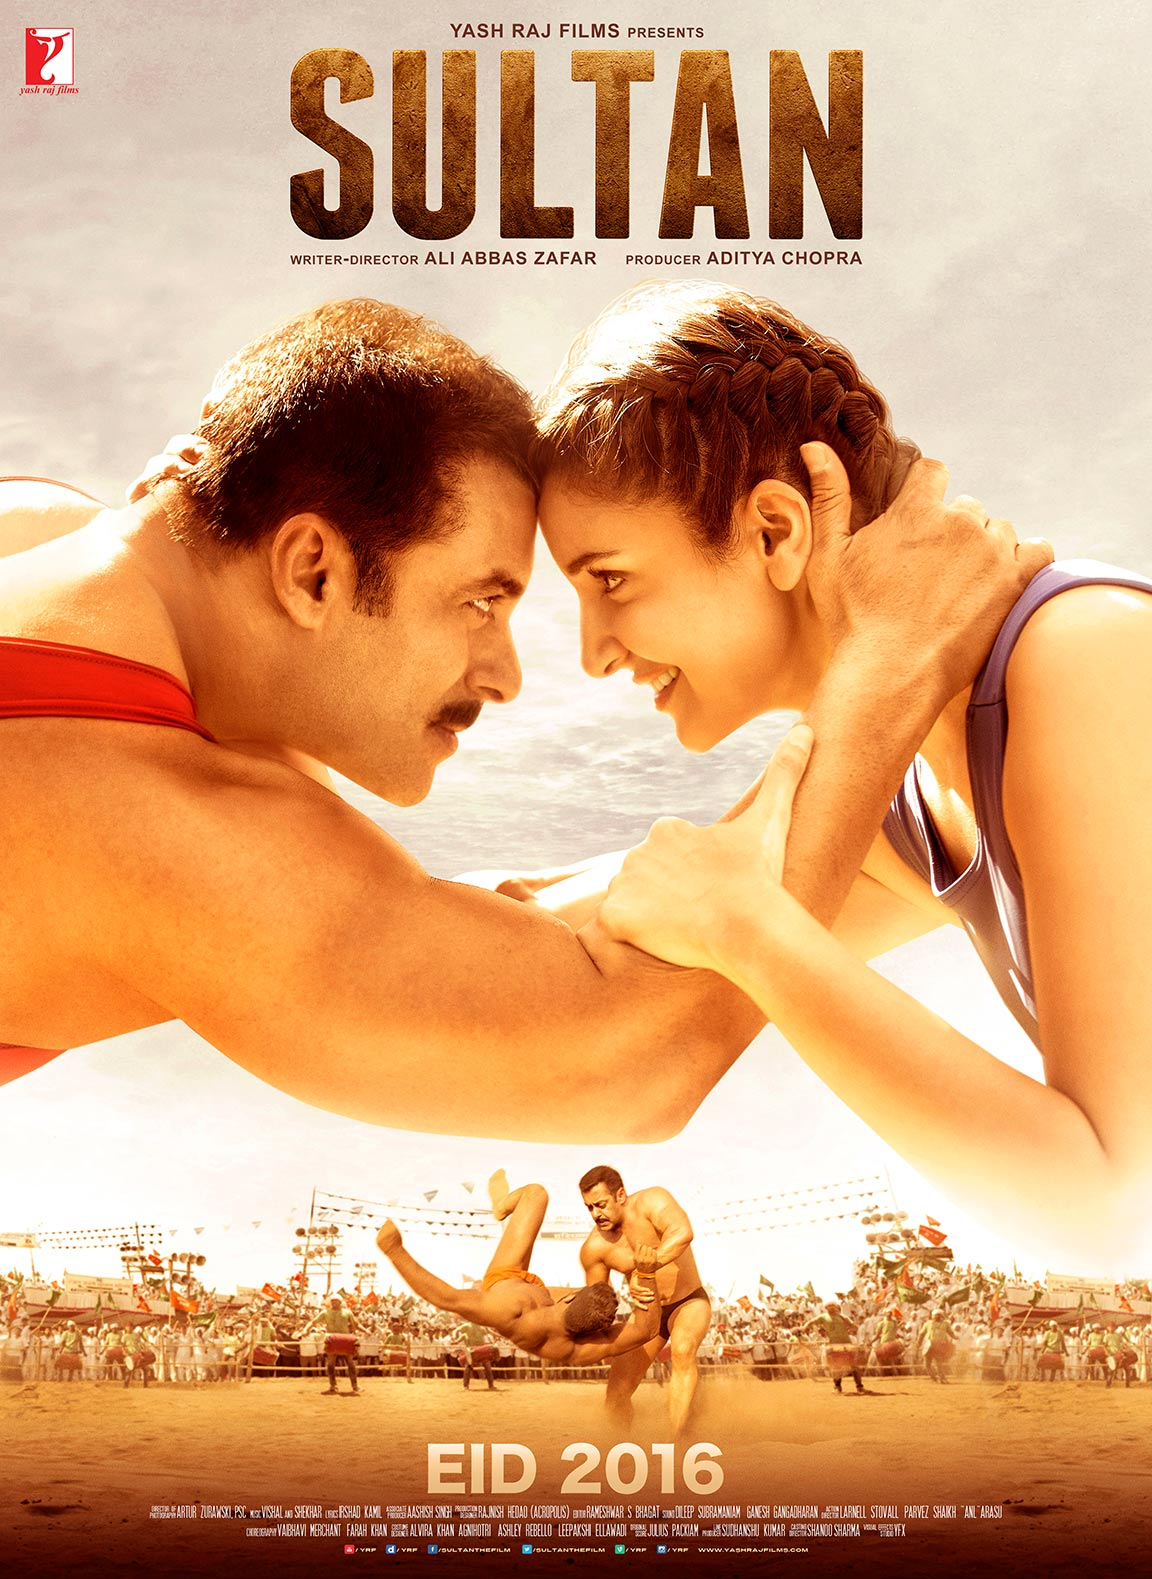 SULTAN (2016) 720p mHD DVDSCR x264 AAC 5.1 [DDR-Exclusive] 1.46GB